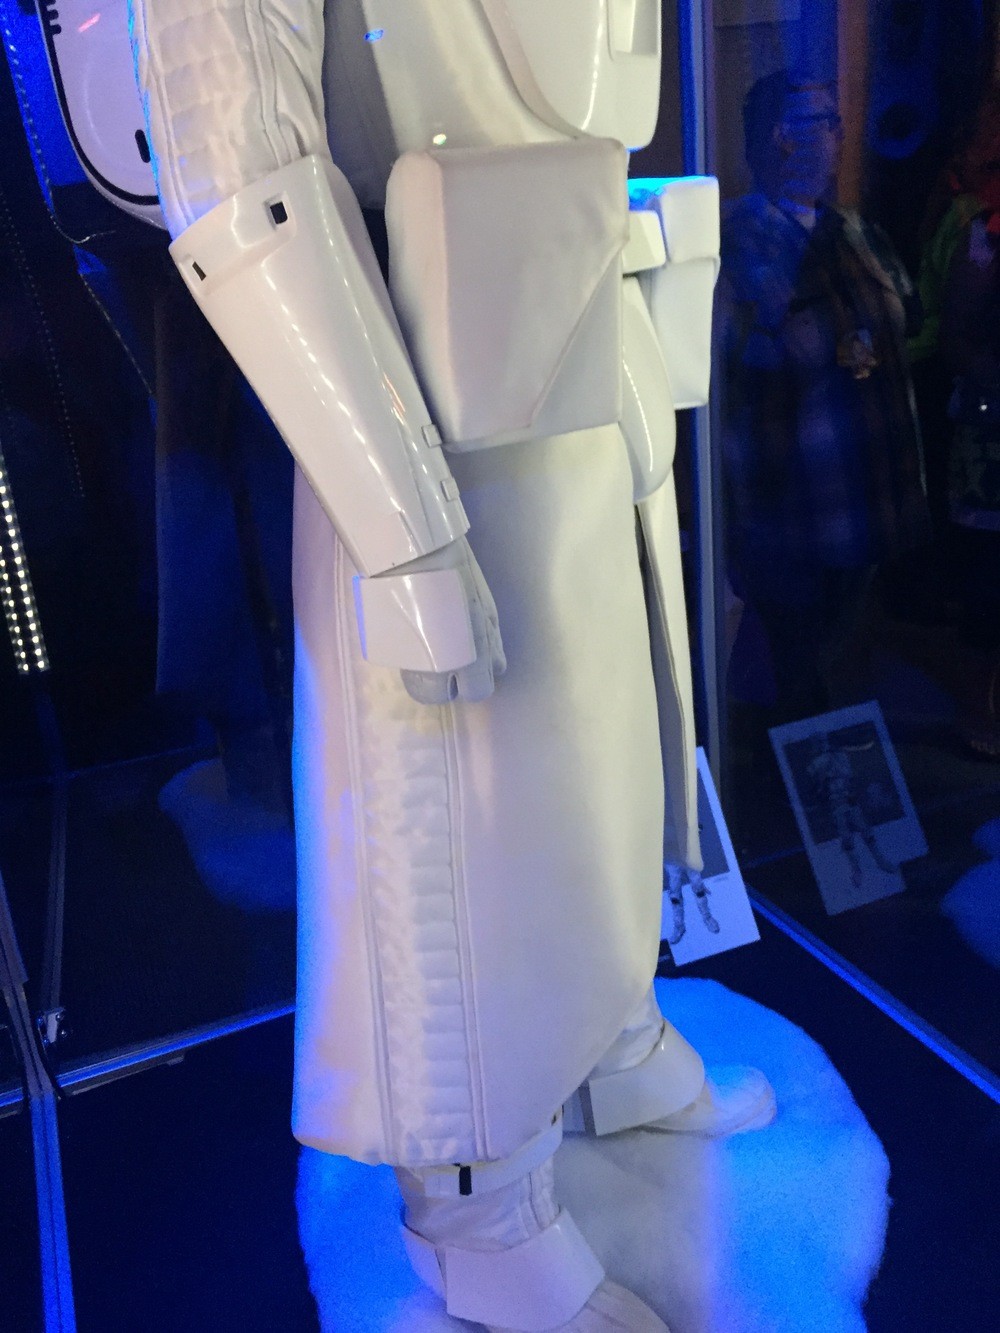 Force Awakens Exhibit  - 78.jpg